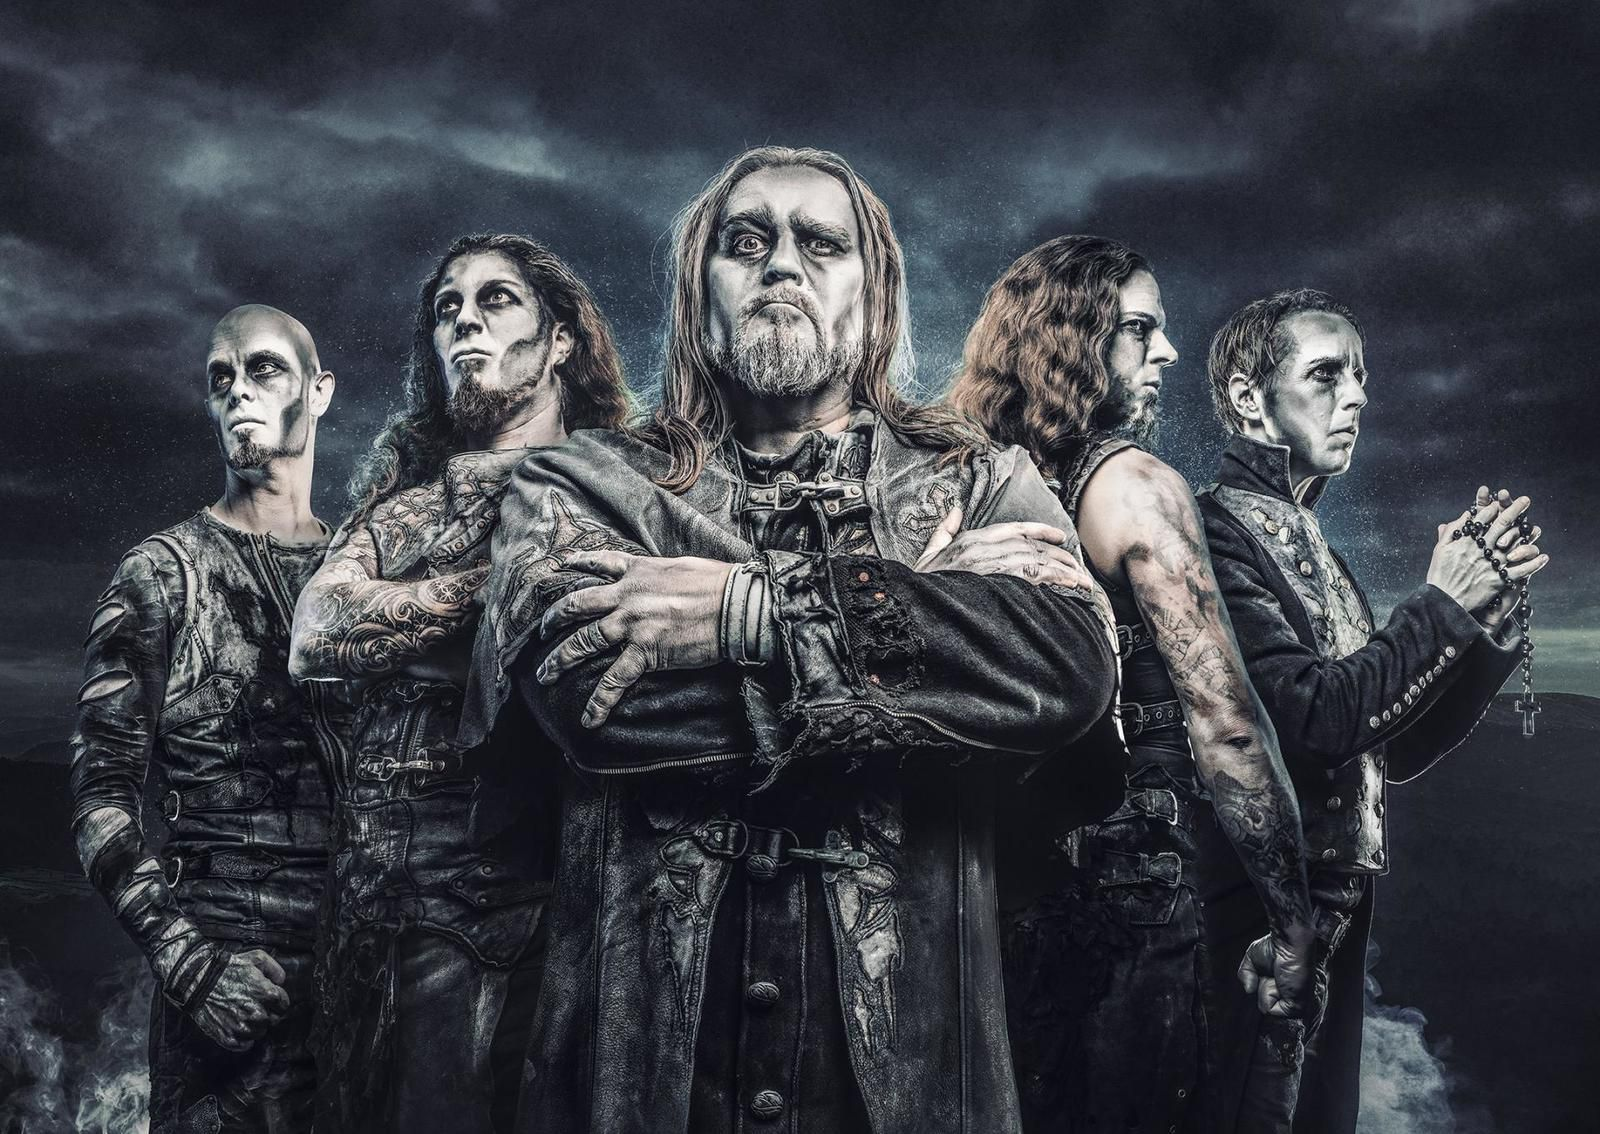 VIDEO - Nouvelle lyrics vidéo de POWERWOLF